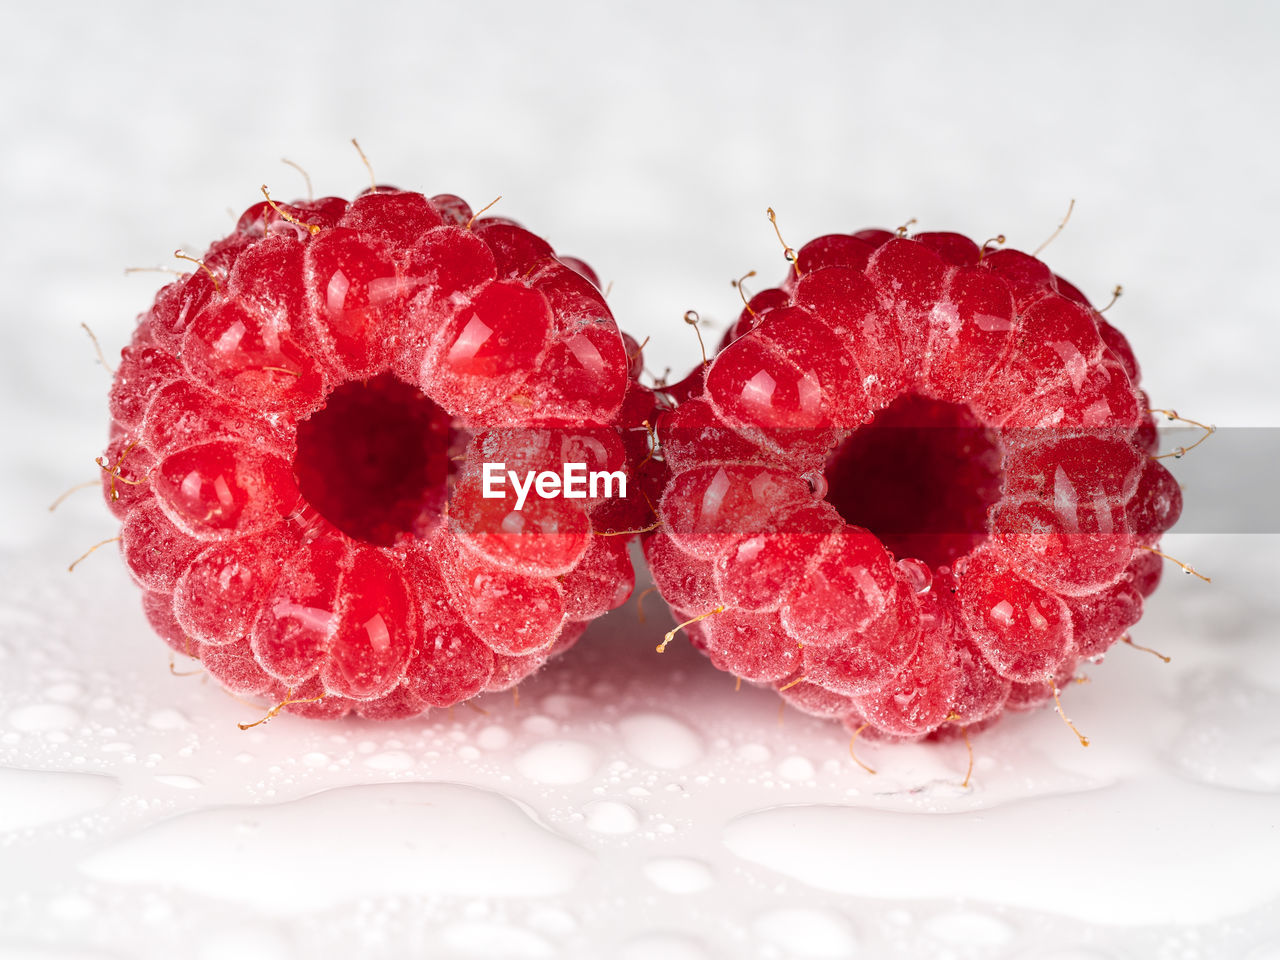 Close-up of raspberries on table